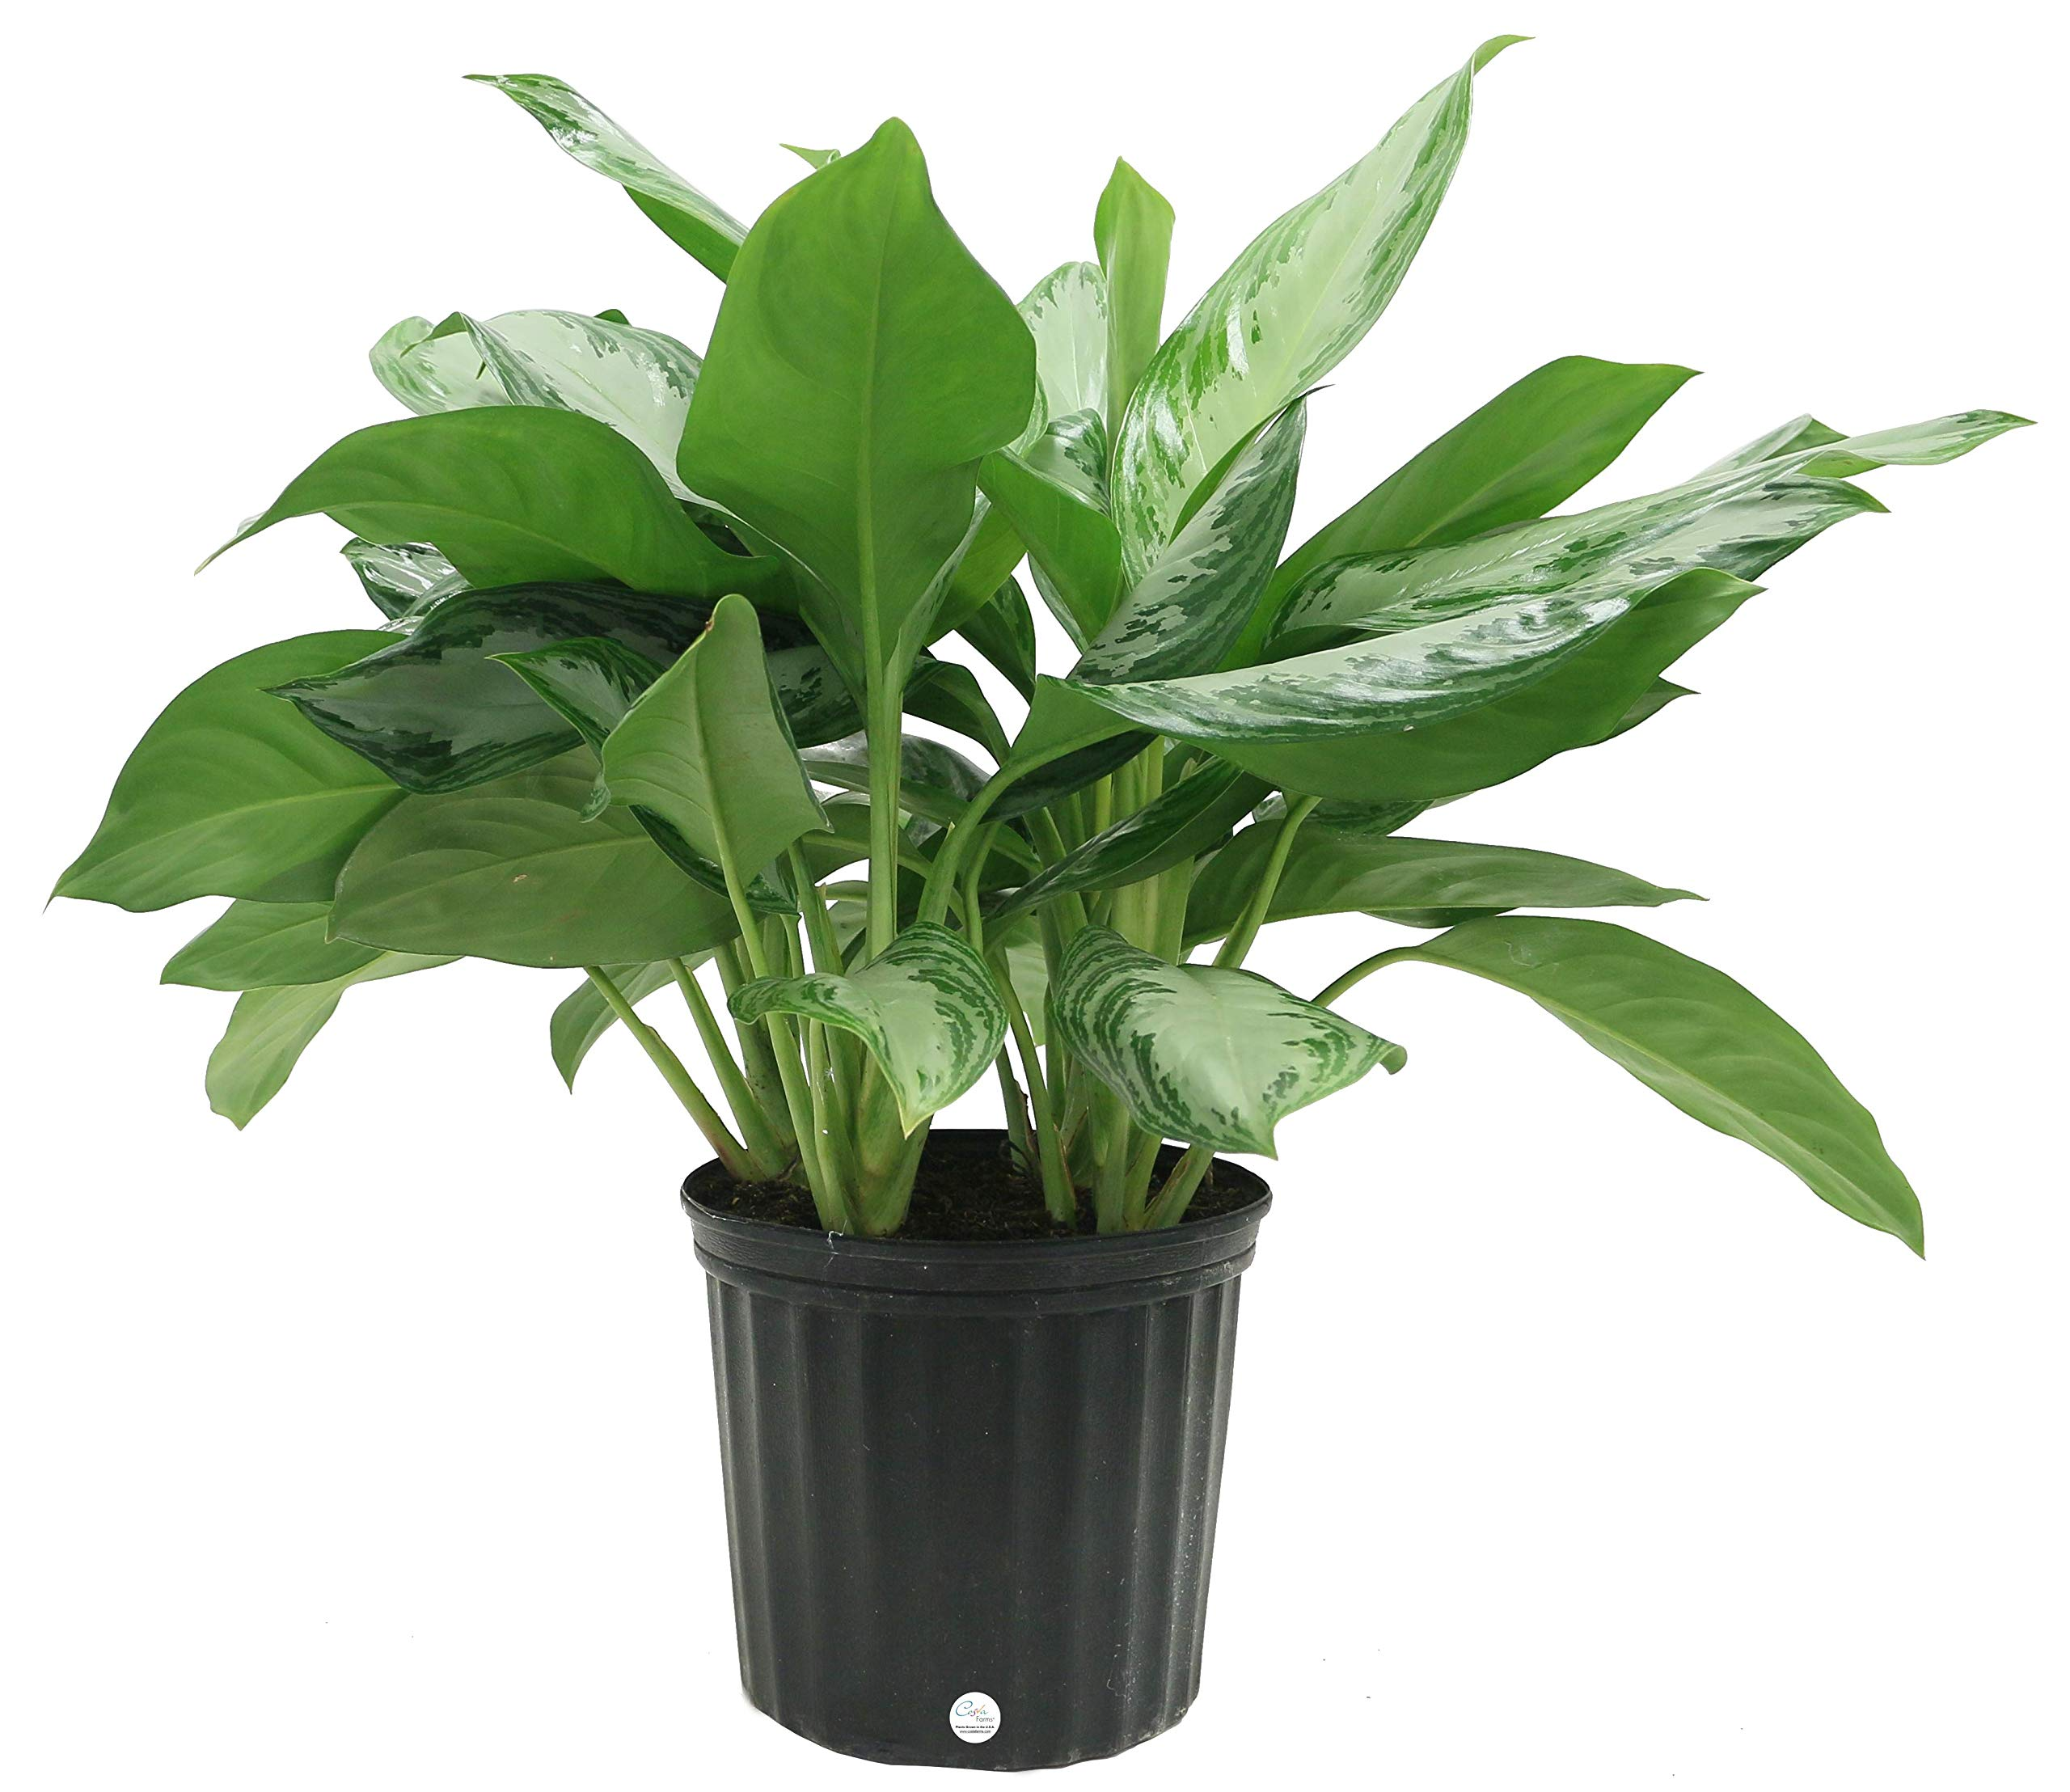 Costa Farms Aglaonema Chinese Evergreen Live Indoor Plant, 30-Inches Tall, Ships in Grower's Pot